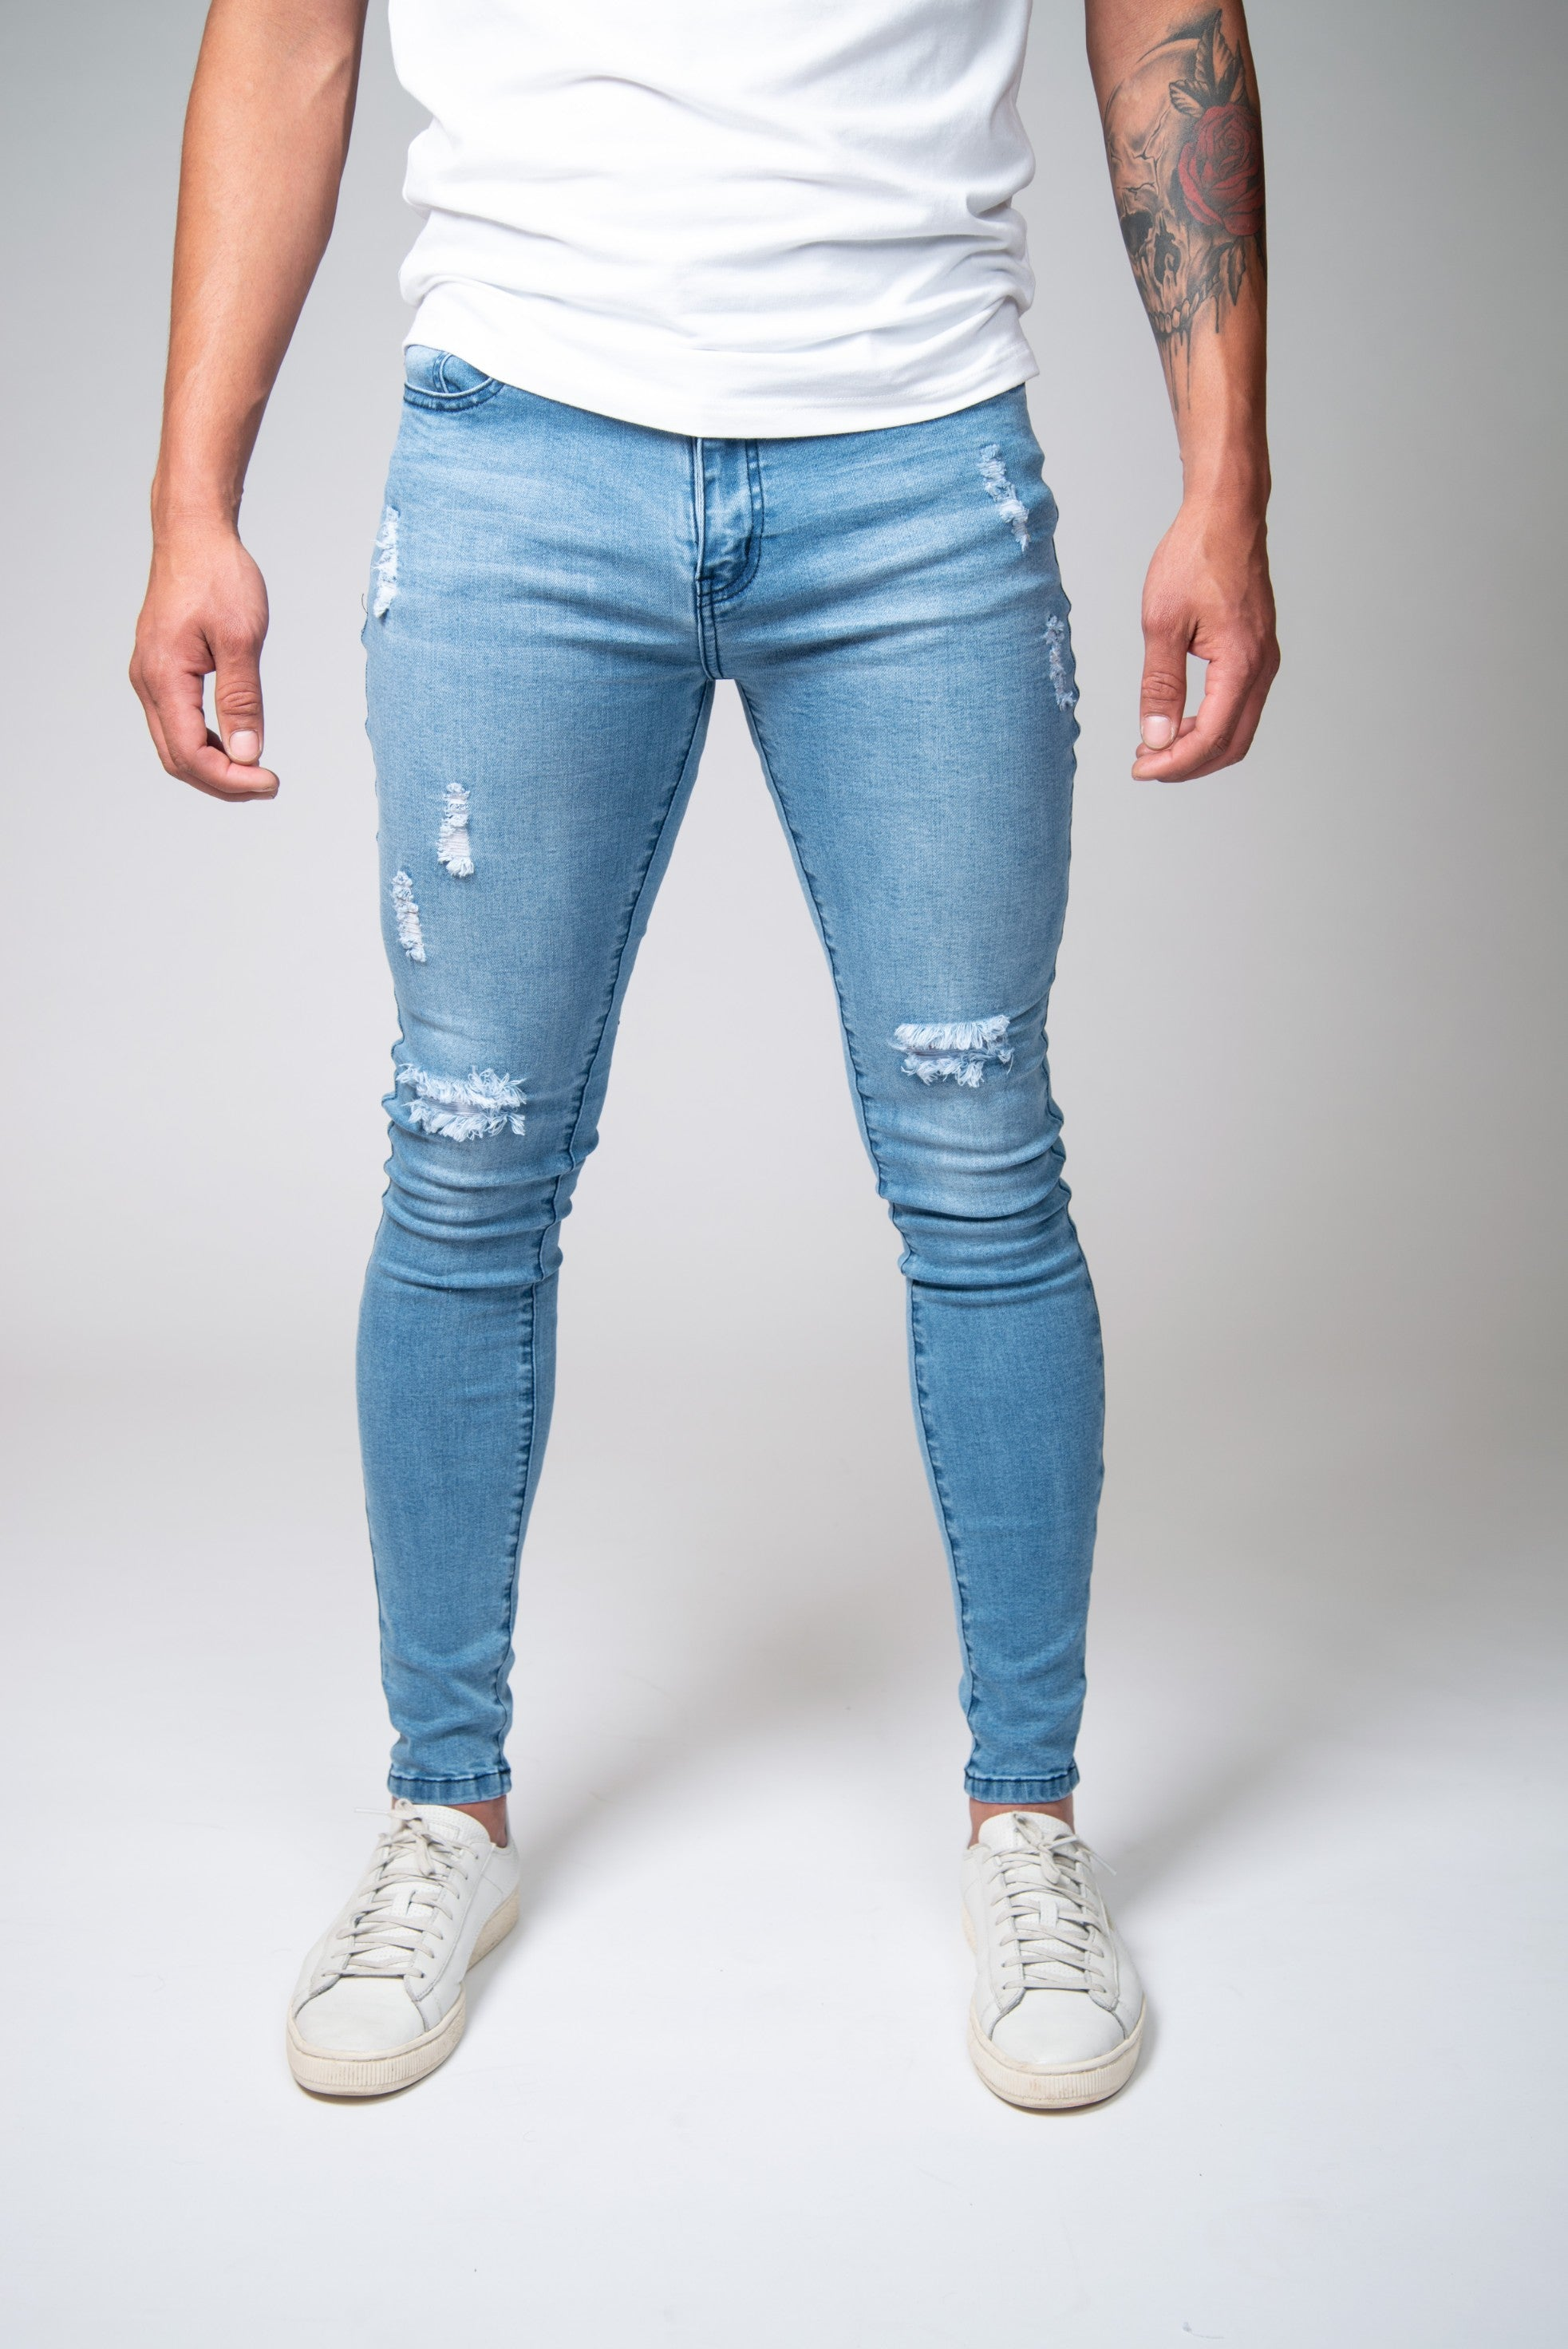 7c5421f0863 Light Blue Jeans - Ripped   Repaired – Jeans23